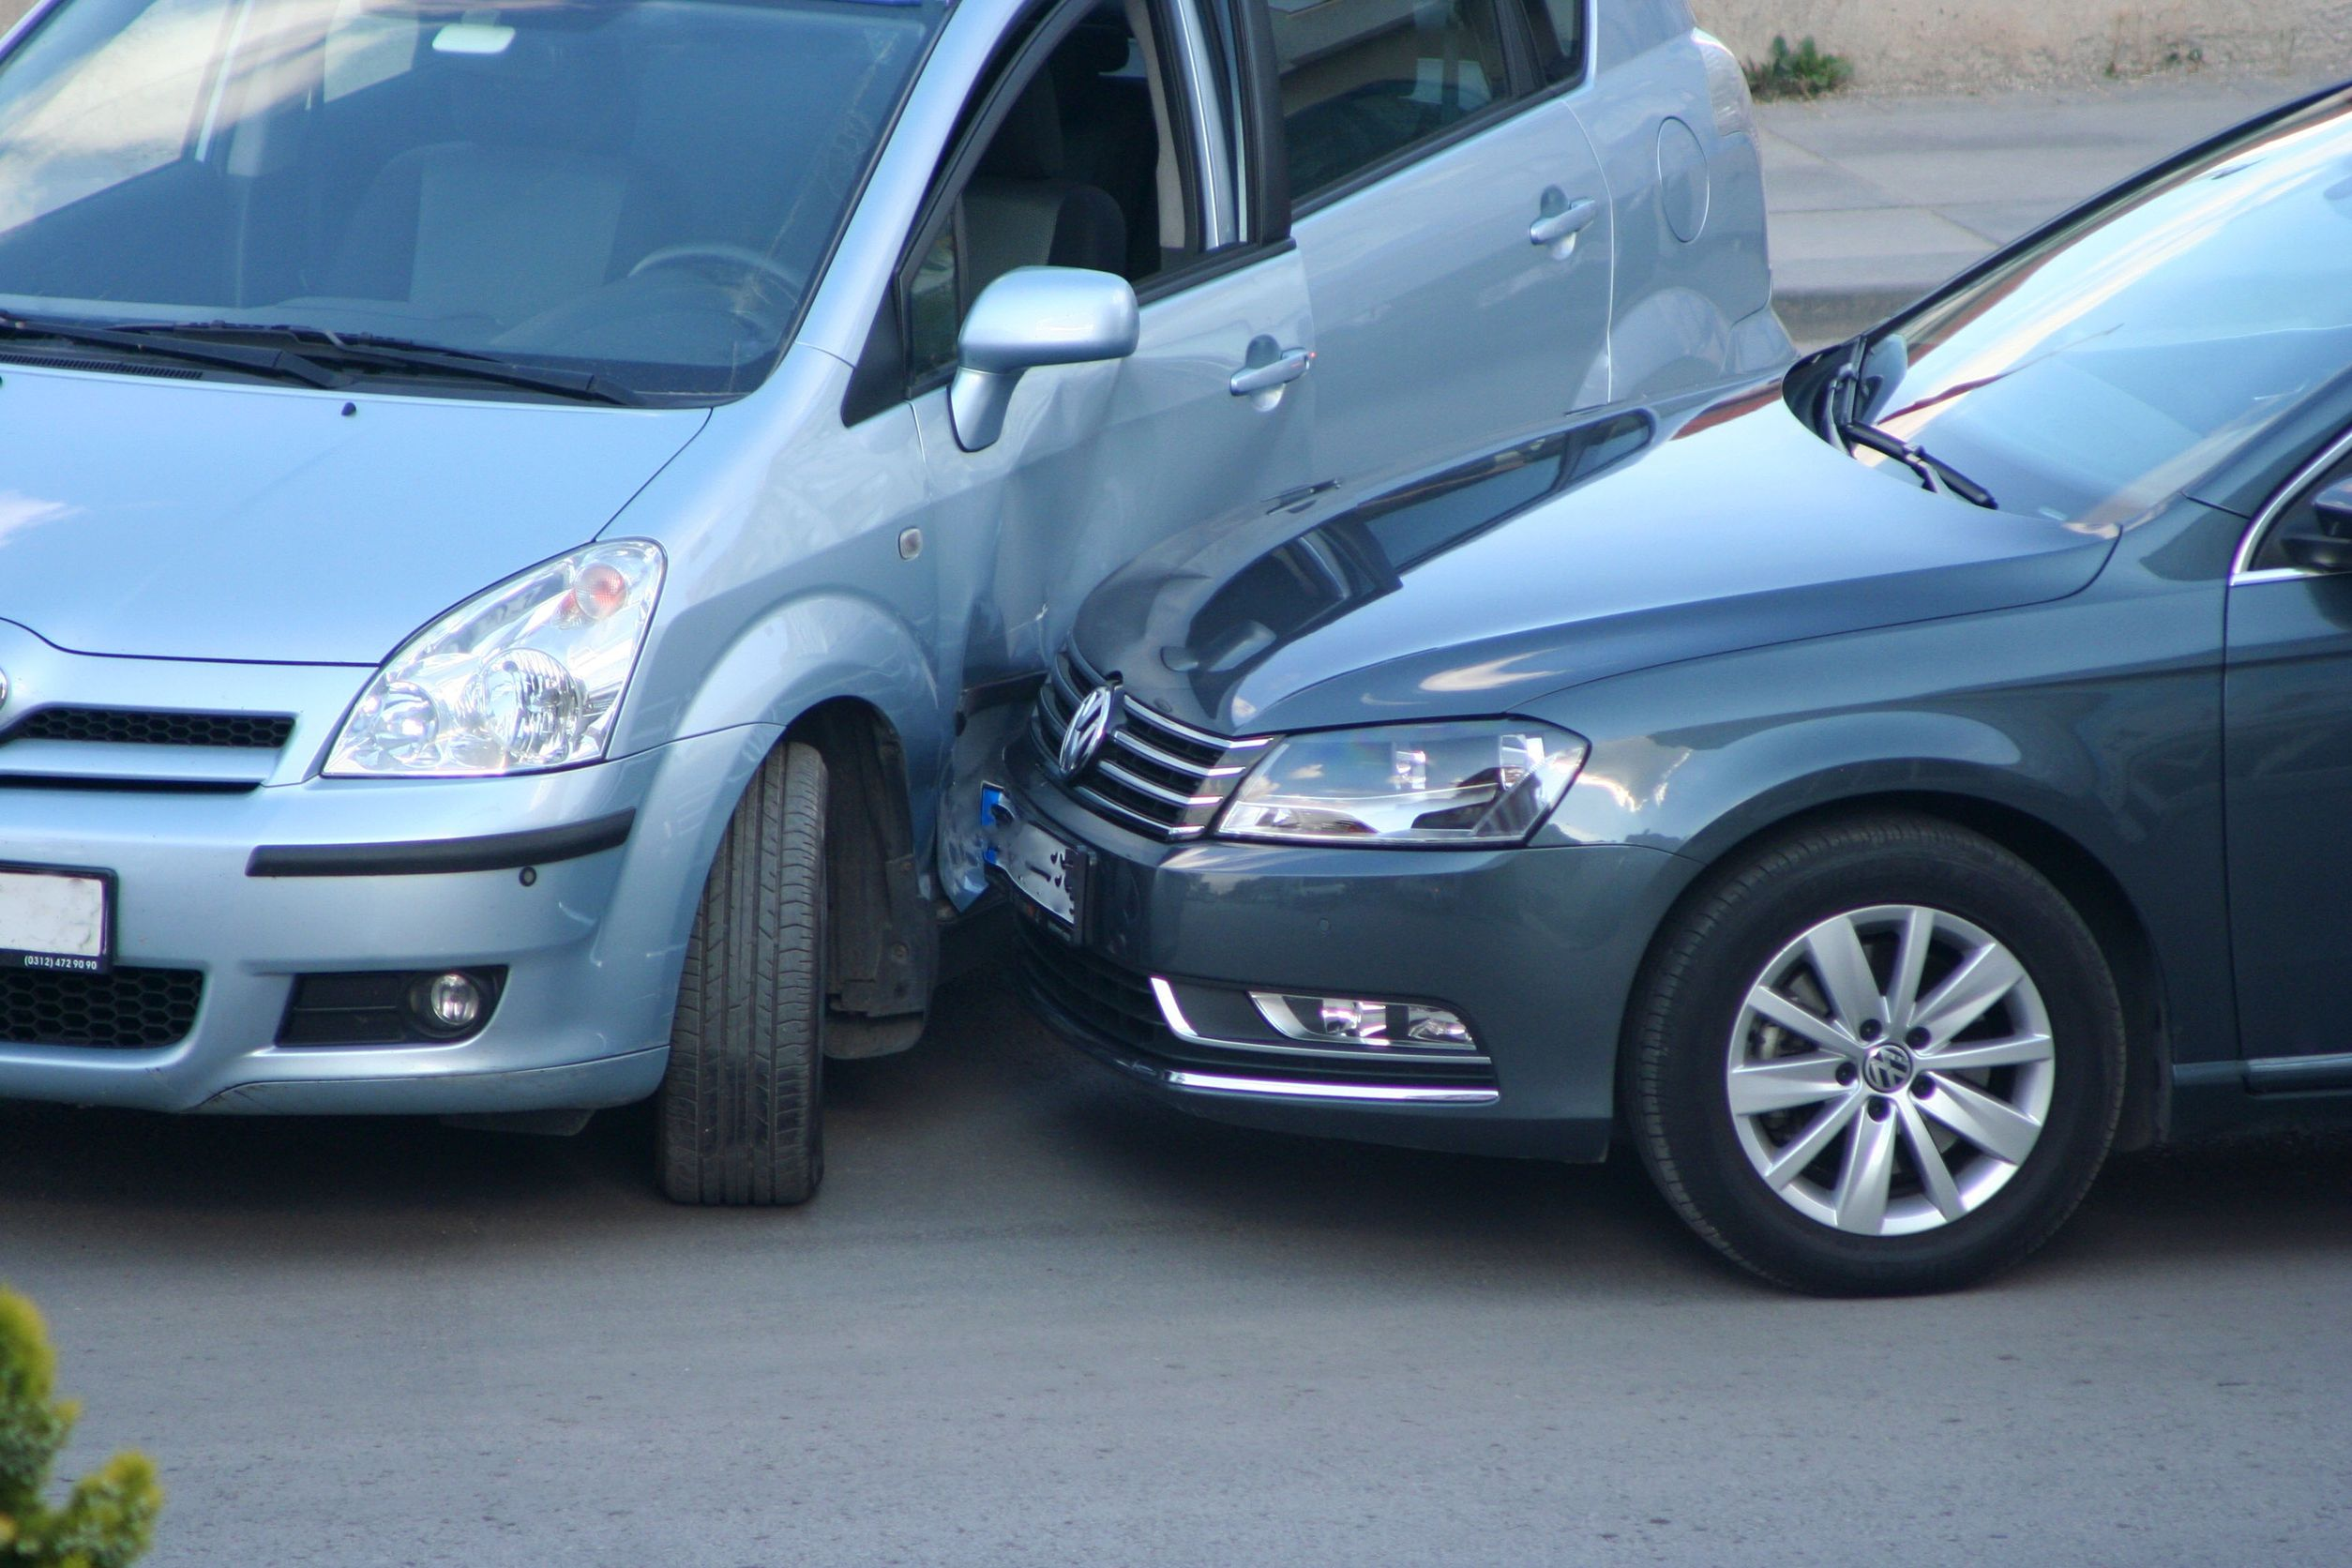 car accident - auto accident